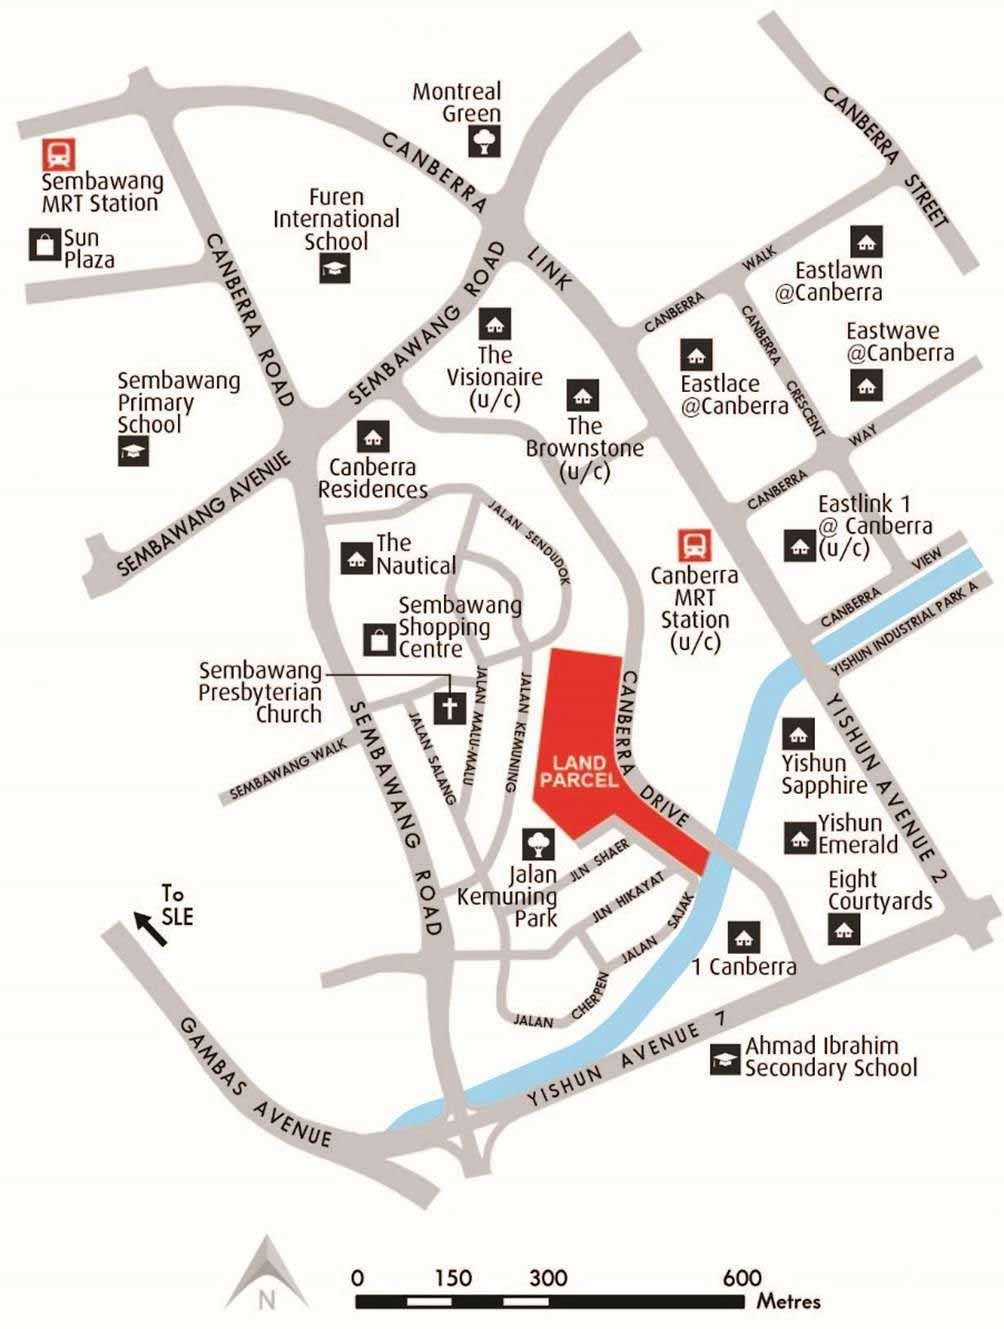 THE WATERGARDENS 沁水轩 JUST 3 MINUTES WALK TO NEW CANBERRA MRT Location